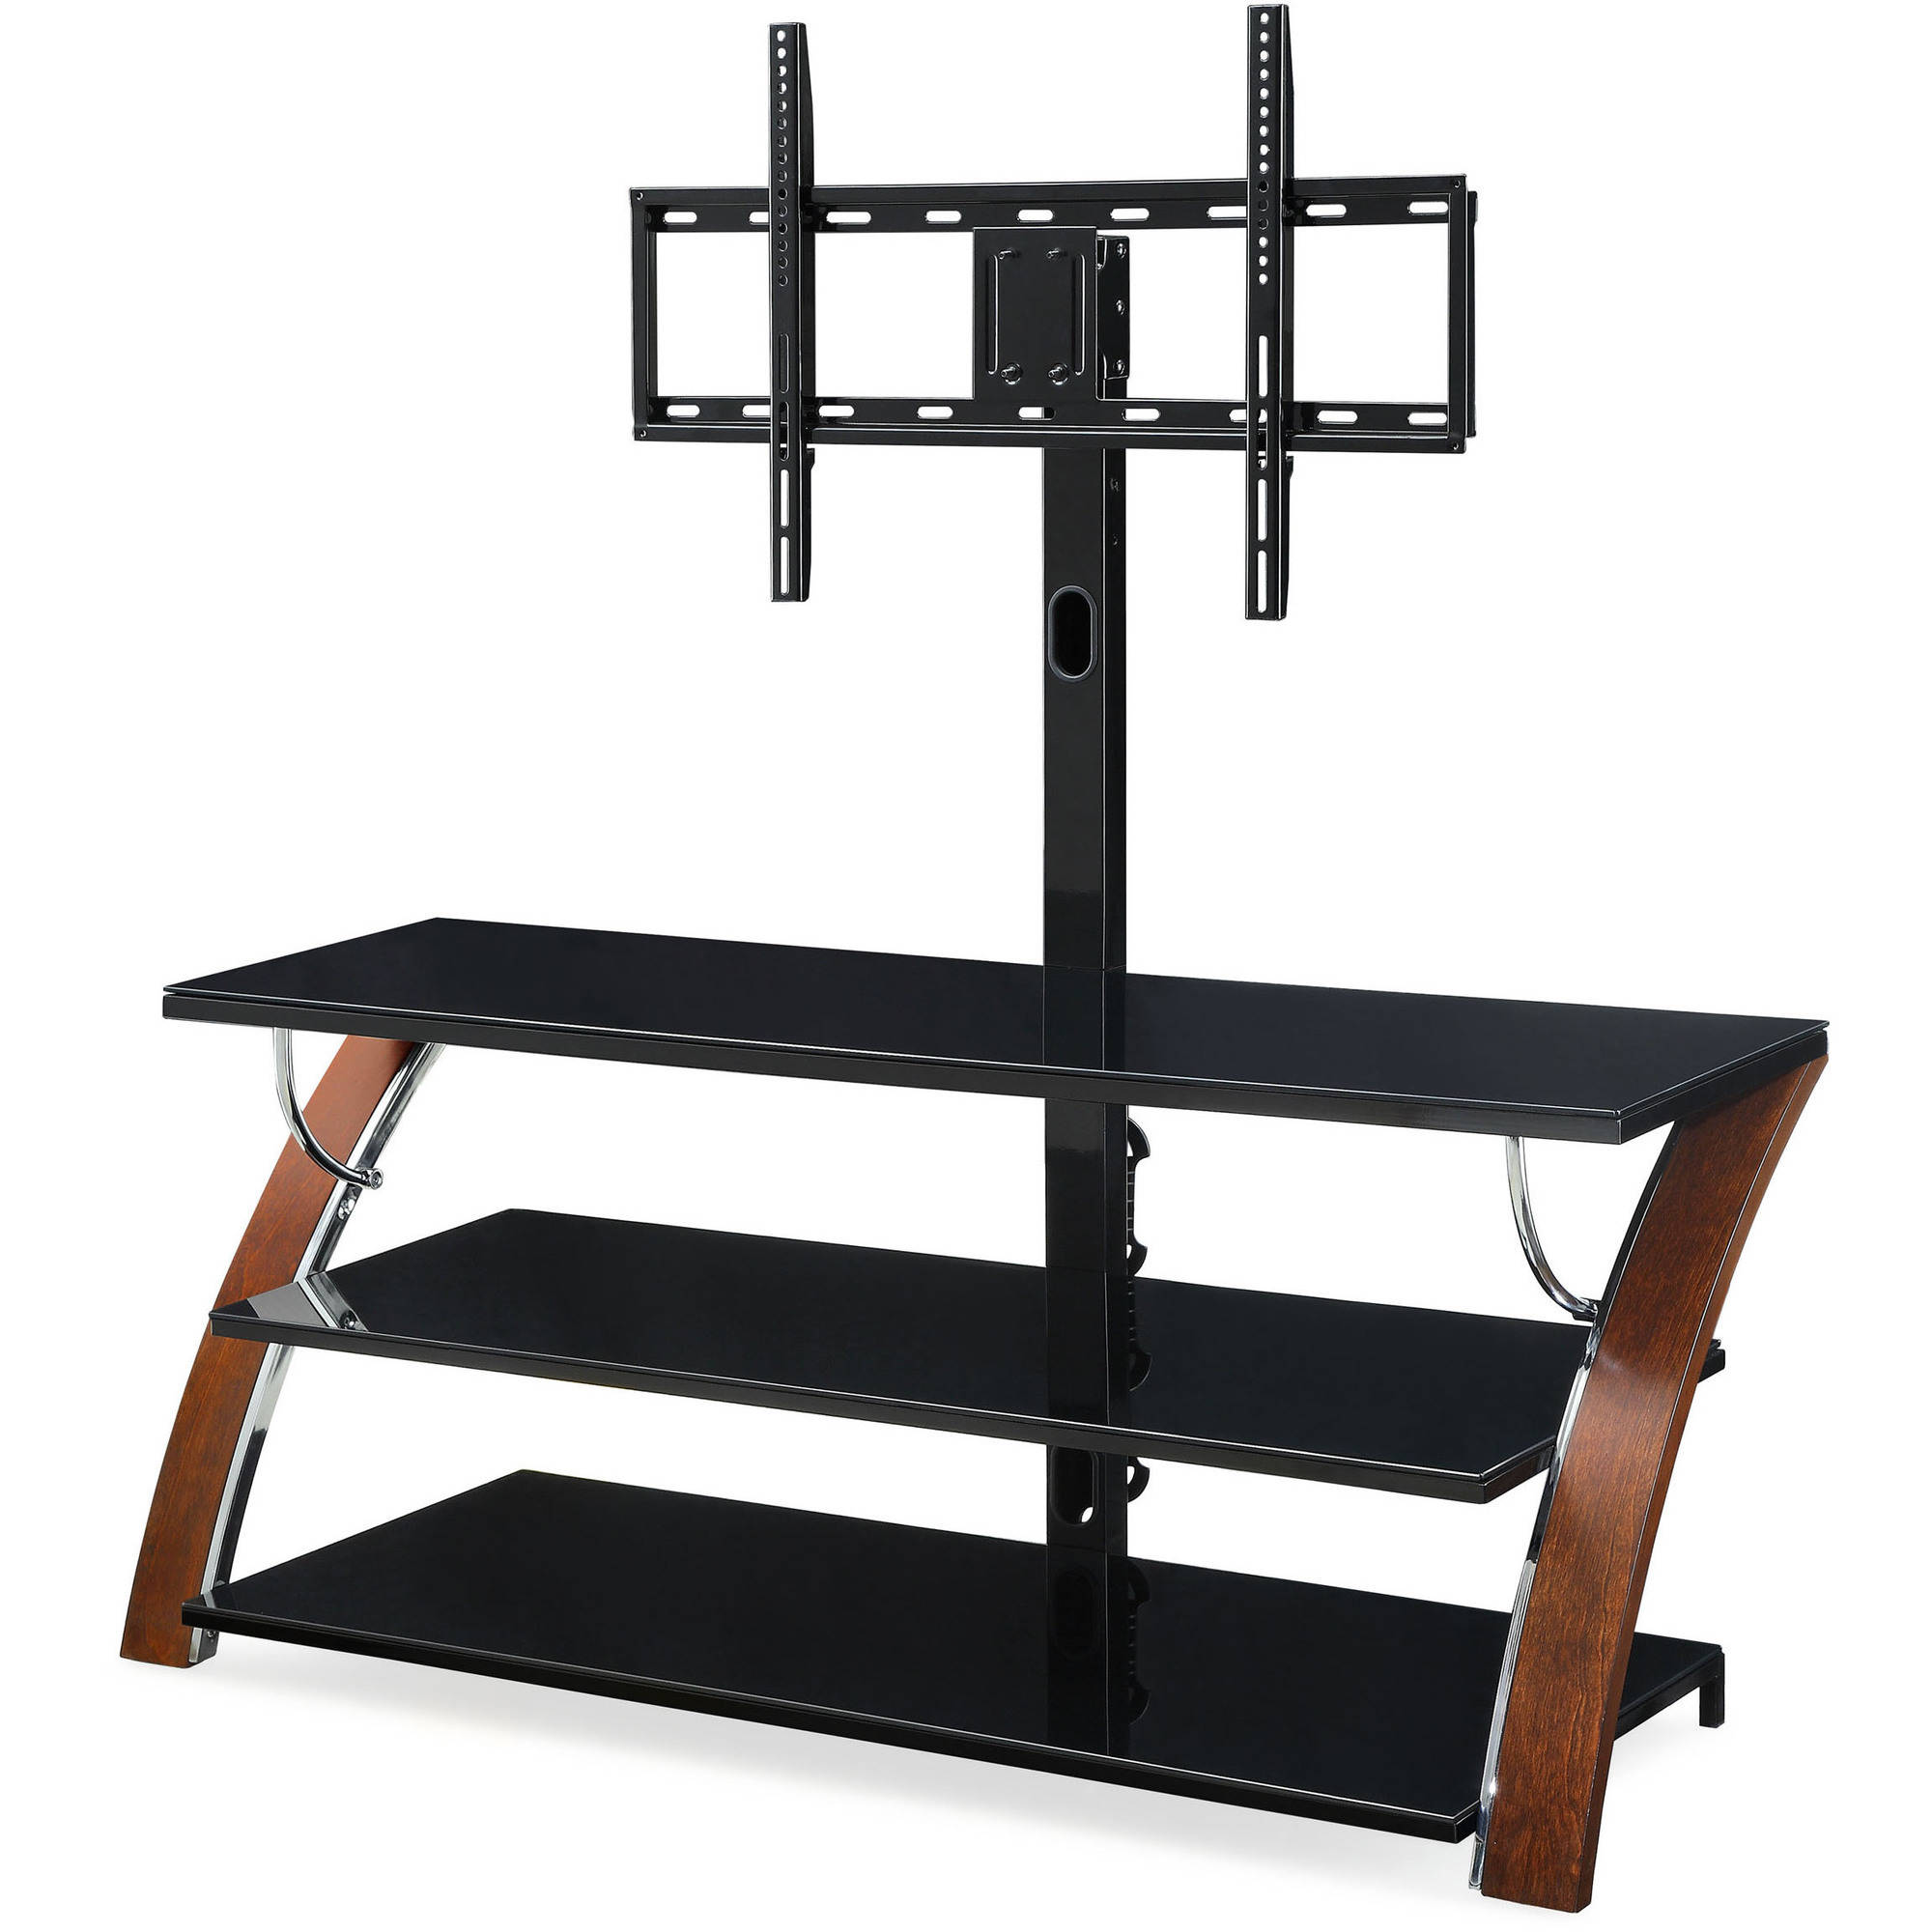 Whalen payton brown cherry 3 in 1 flat panel tv stand for tvs up to 65 walmart com